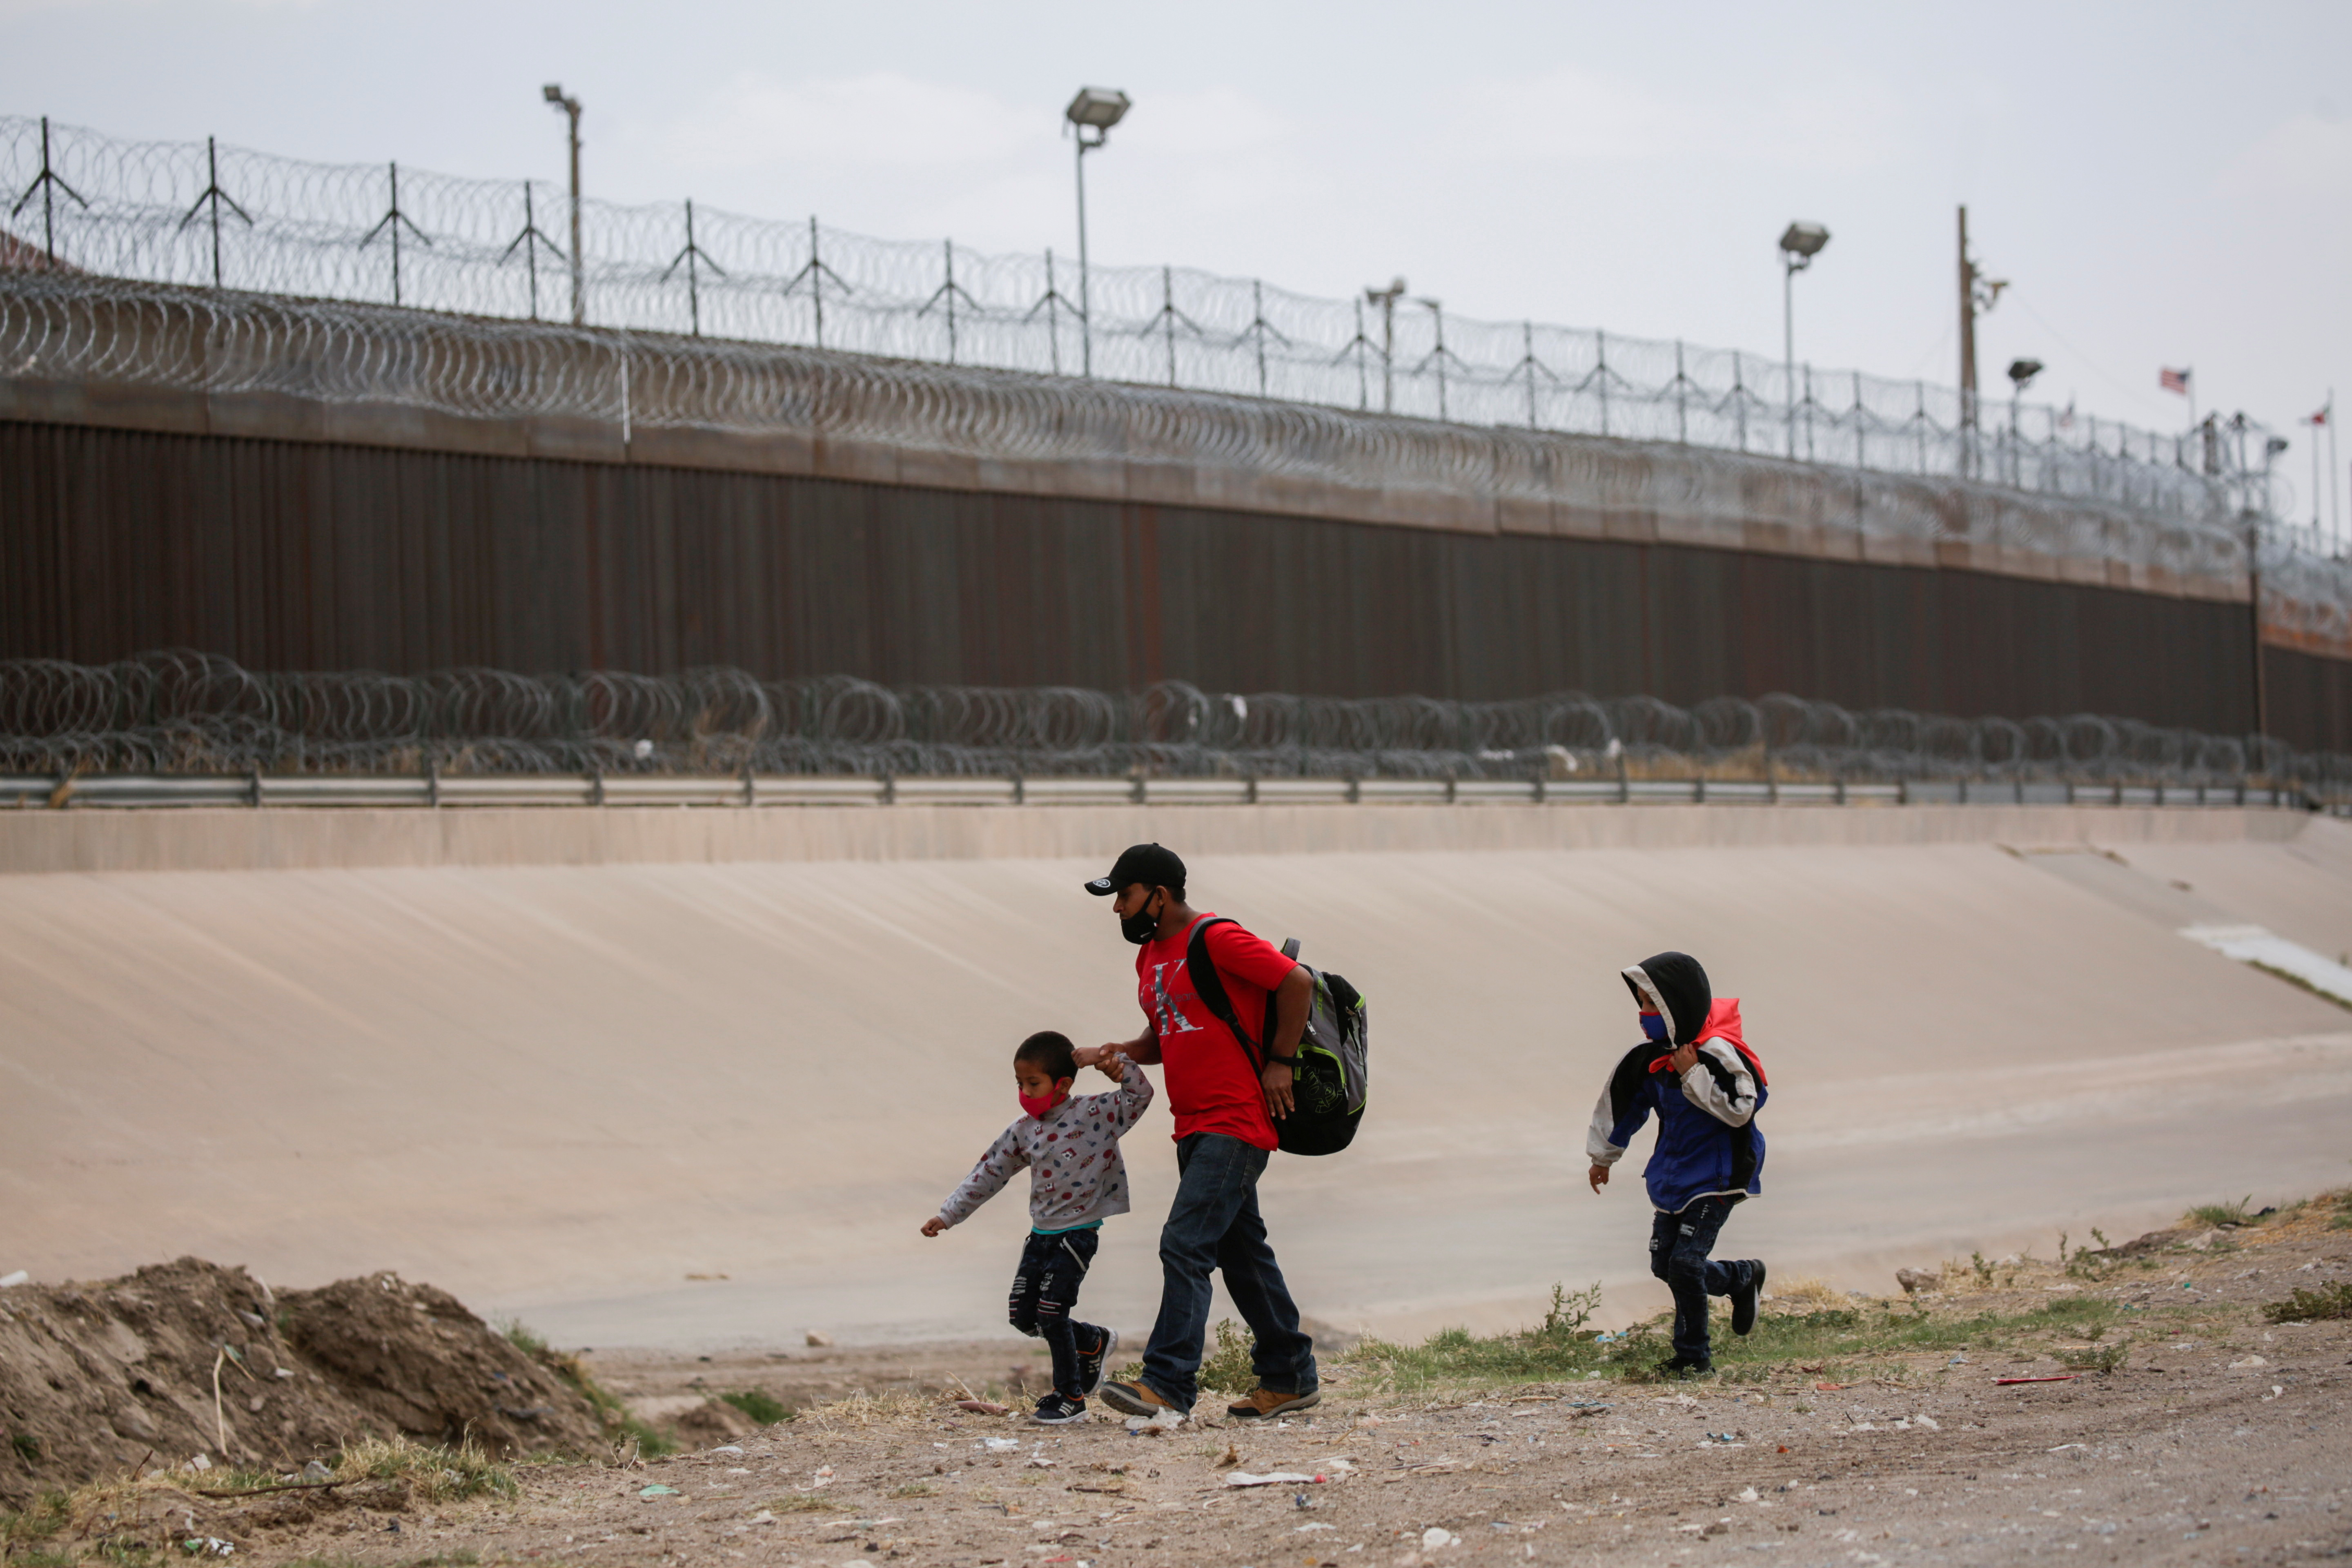 Migrants are seen in Ciudad Juarez, Mexico before crossing the Rio Bravo river to turn themselves in to U.S. Border Patrol agents to request for asylum in El Paso, Texas on March 22, 2021. (Jose Luis Gonzalez/Reuters)